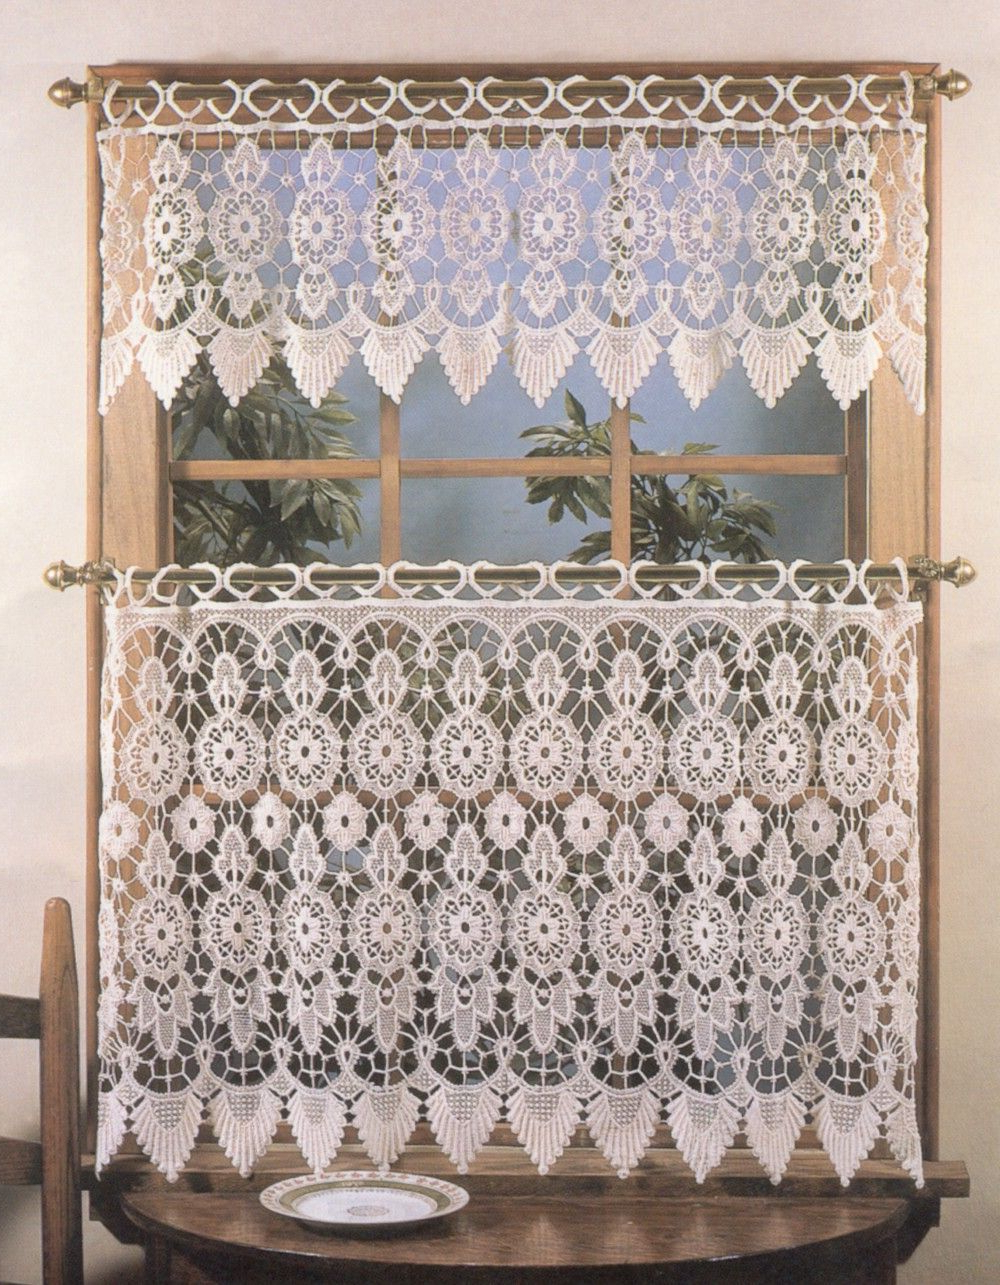 Diy Intended For French Vanilla Country Style Curtain Parts With White Daisy Lace Accent (View 5 of 20)